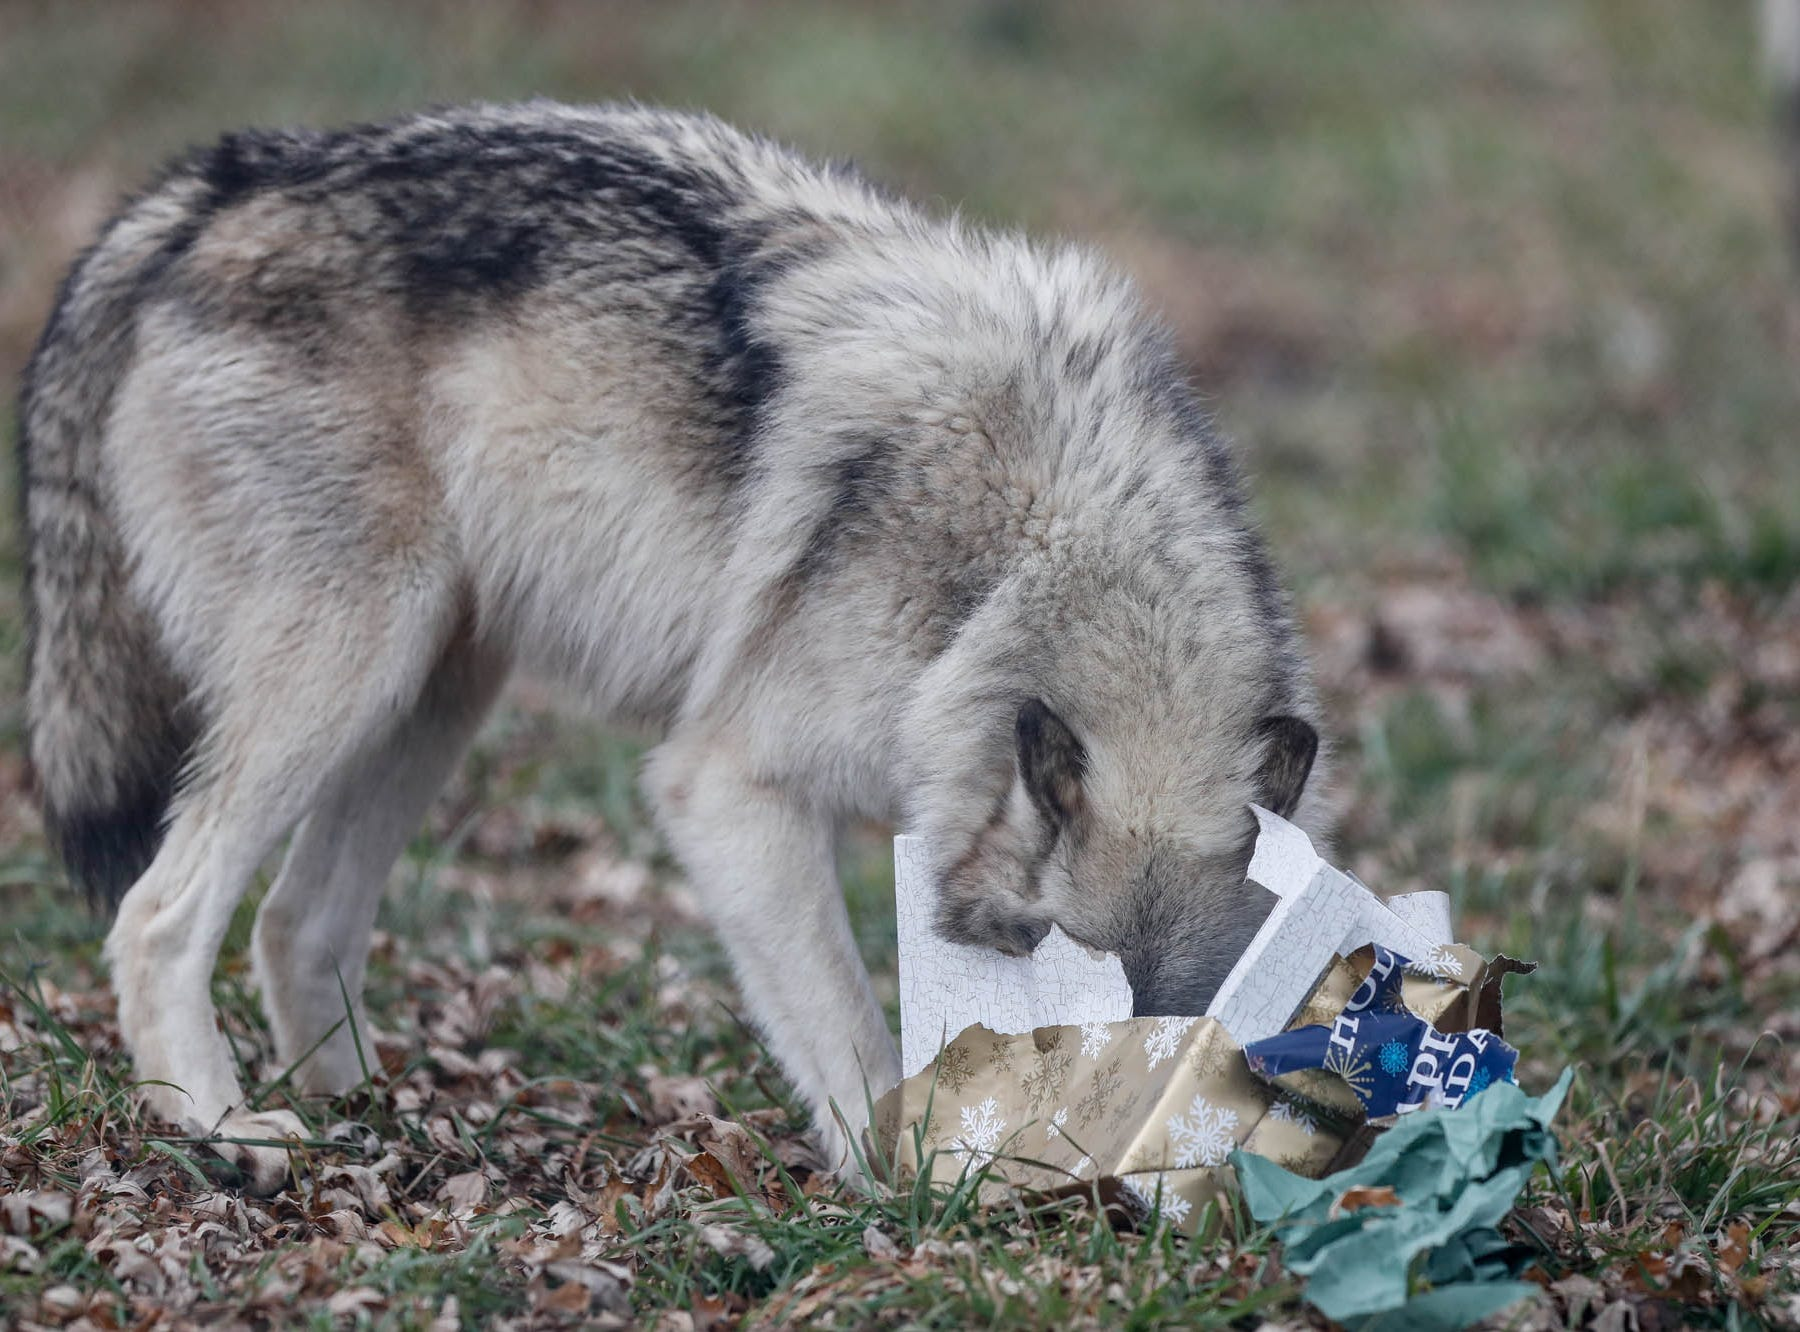 A wolf opens a Christmas present filled with tasty Christmas treats which decorated the enclosure at Wolf Park during Santa's annual visit in Battle Ground Indiana on Saturday, Dec. 15, 2018. Guest's were invited to enter the wolf enclosure before the wolves were released to leave delicious gifts filled with treats and decorate a Christmas tree with snacks.